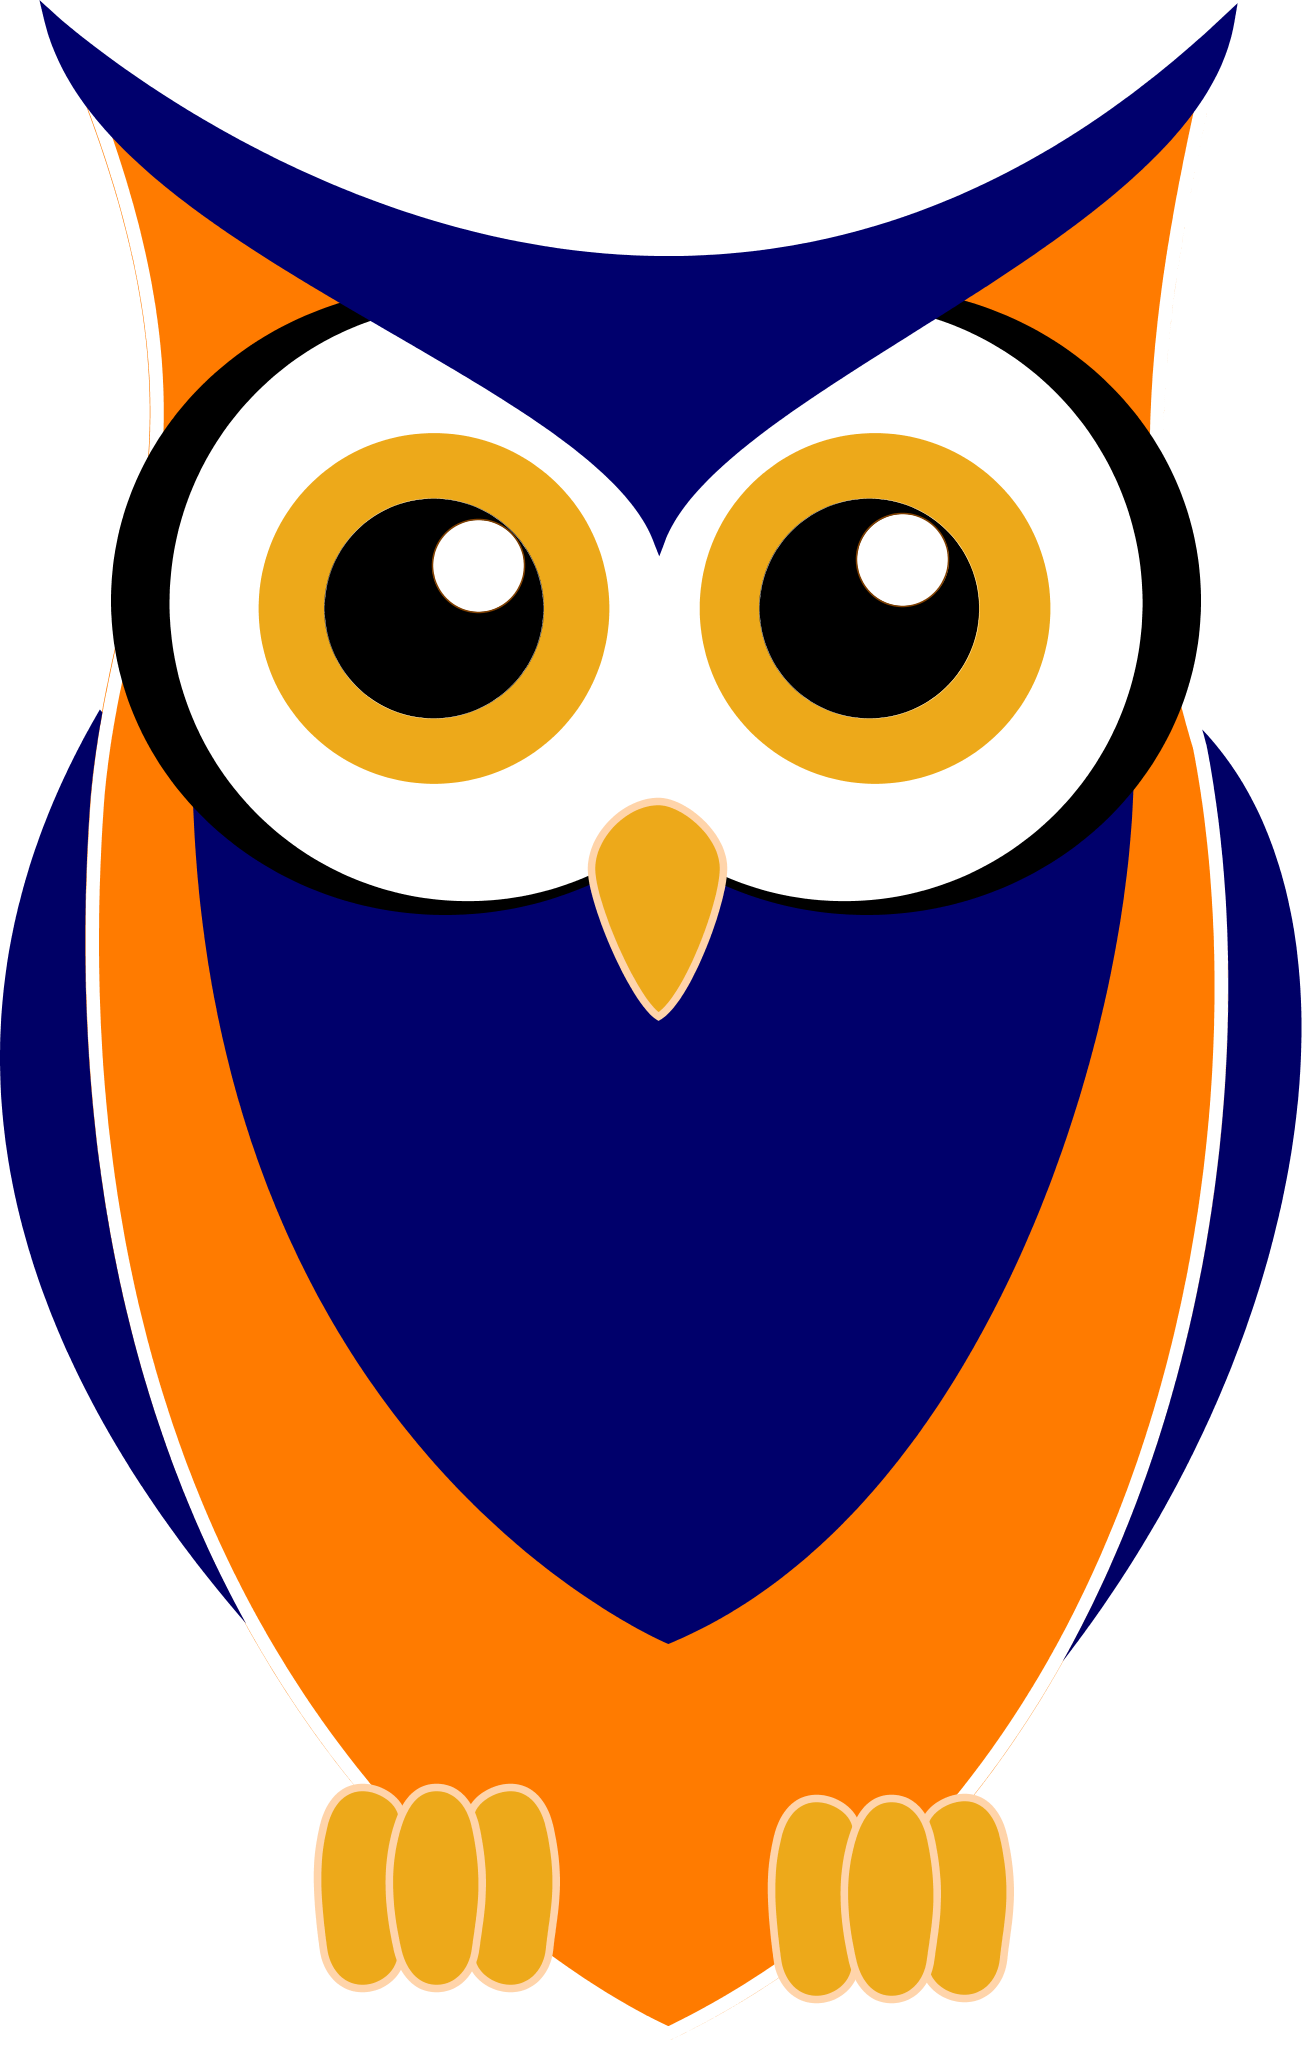 redesign owl